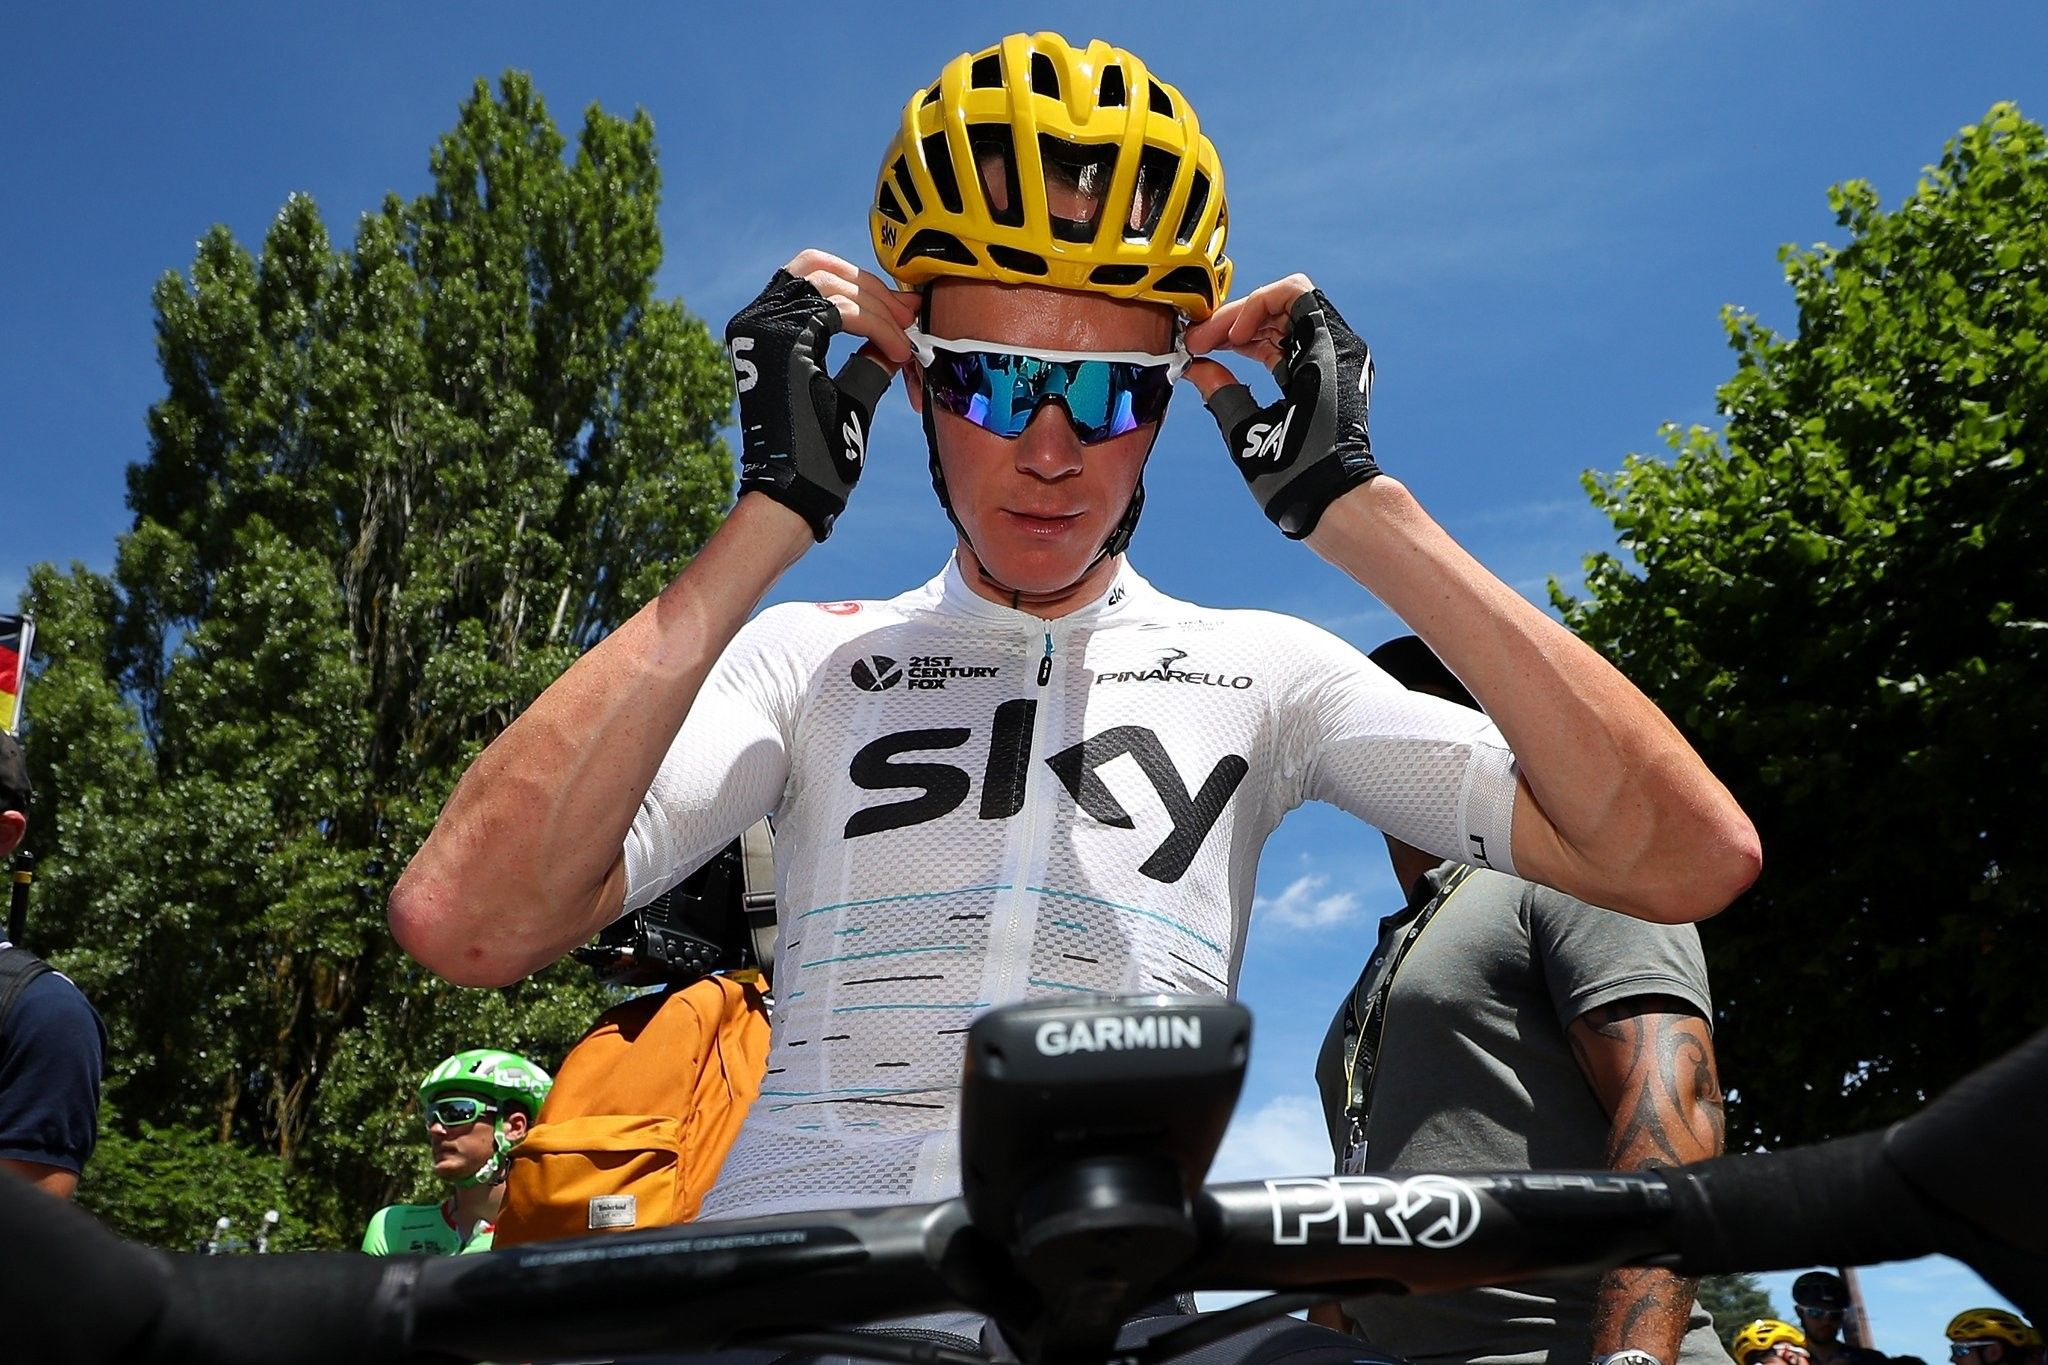 After Another Gruelling Stage Of Tdf2017 Chris Froome Remains 6 Seconds Behind Fabio Aru In The General Classification Chris Froome Bike Racers Chris